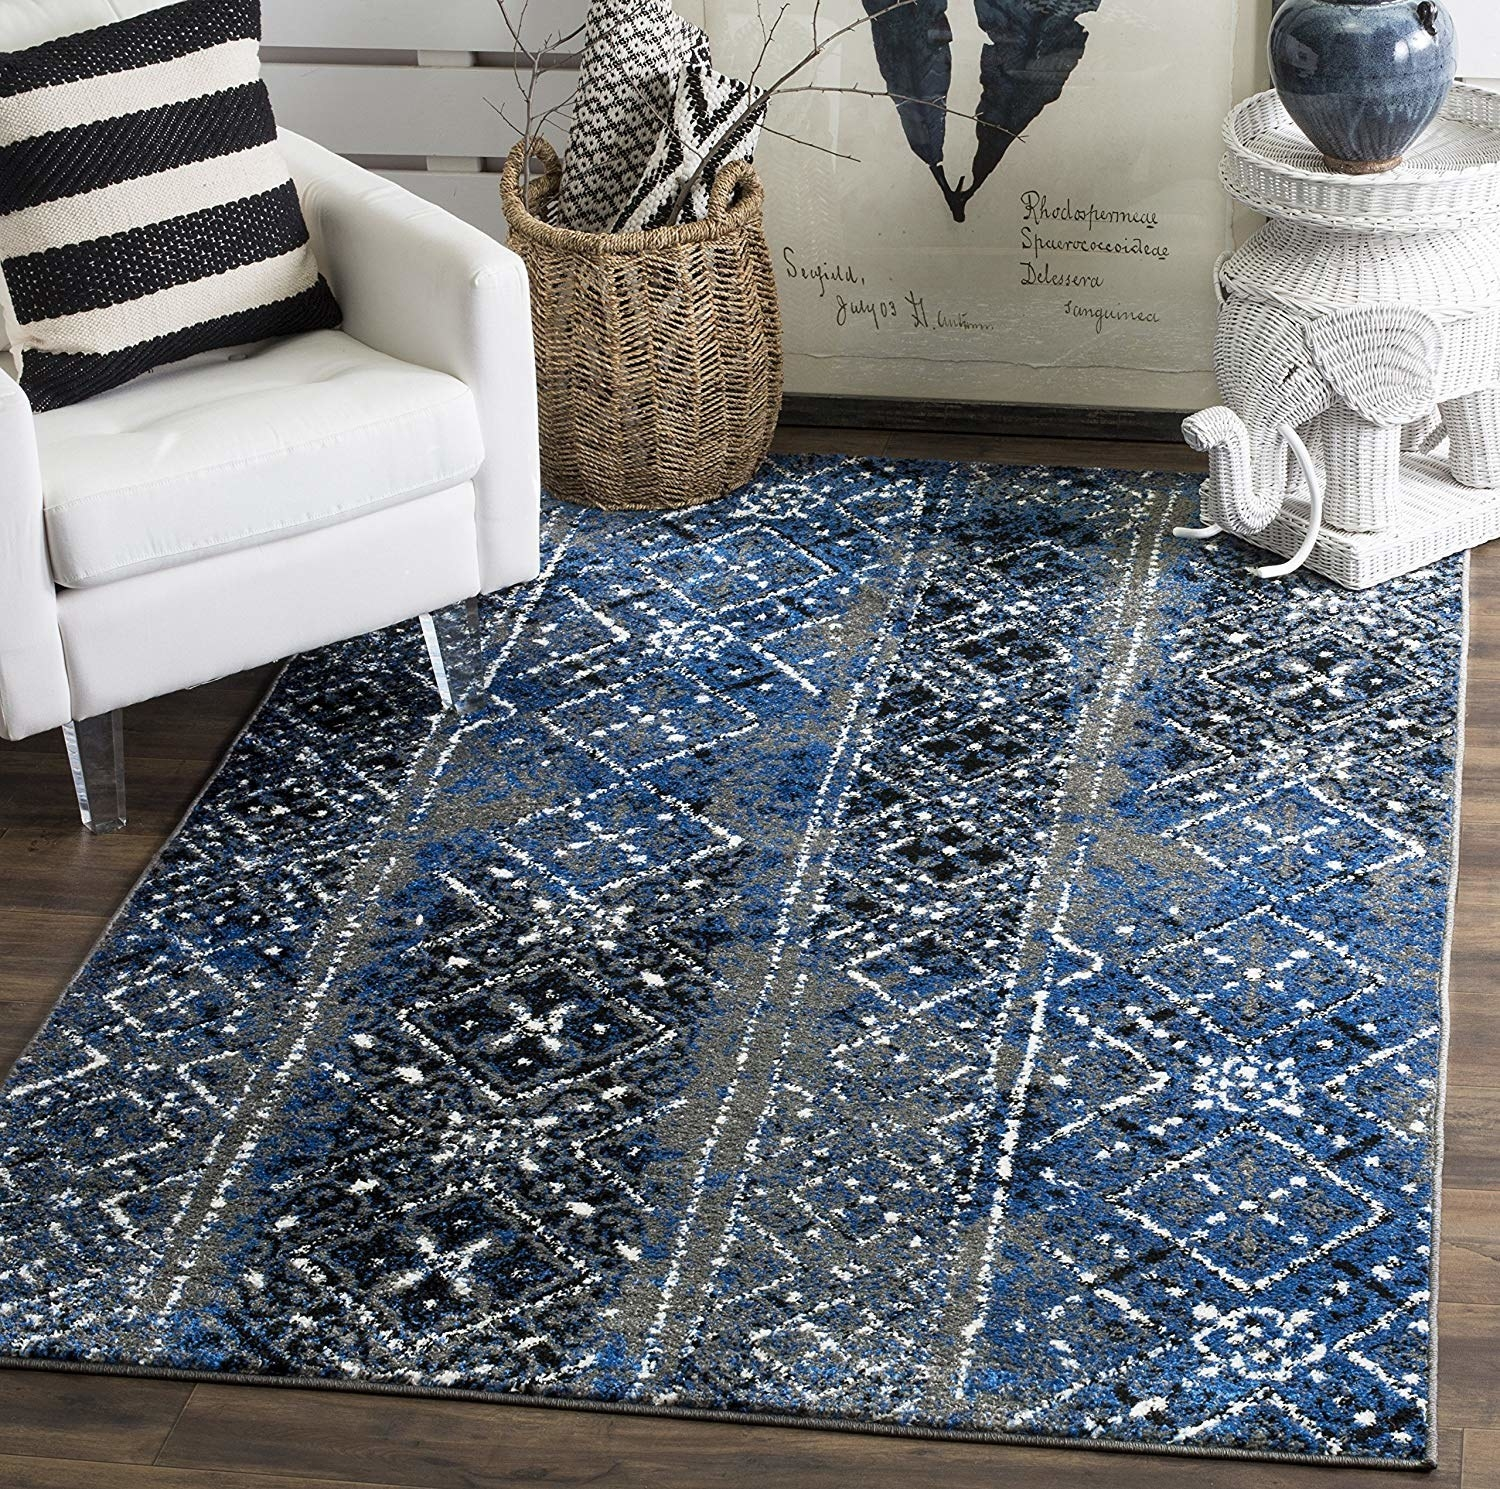 blue and grey diamond and dot patterned rug with white accents